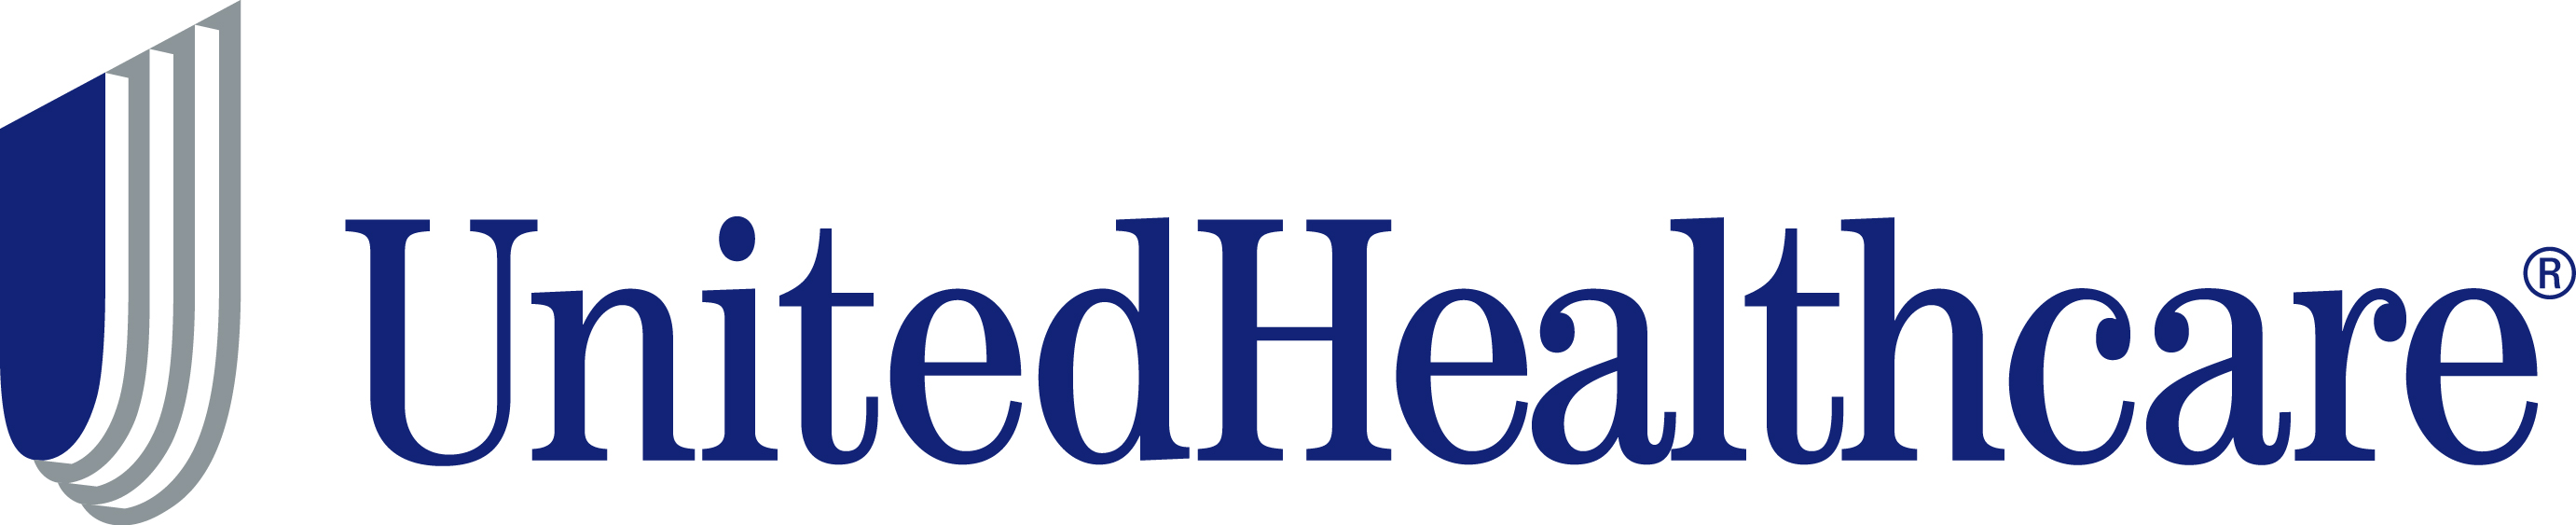 A. United Healthcare (Premier)